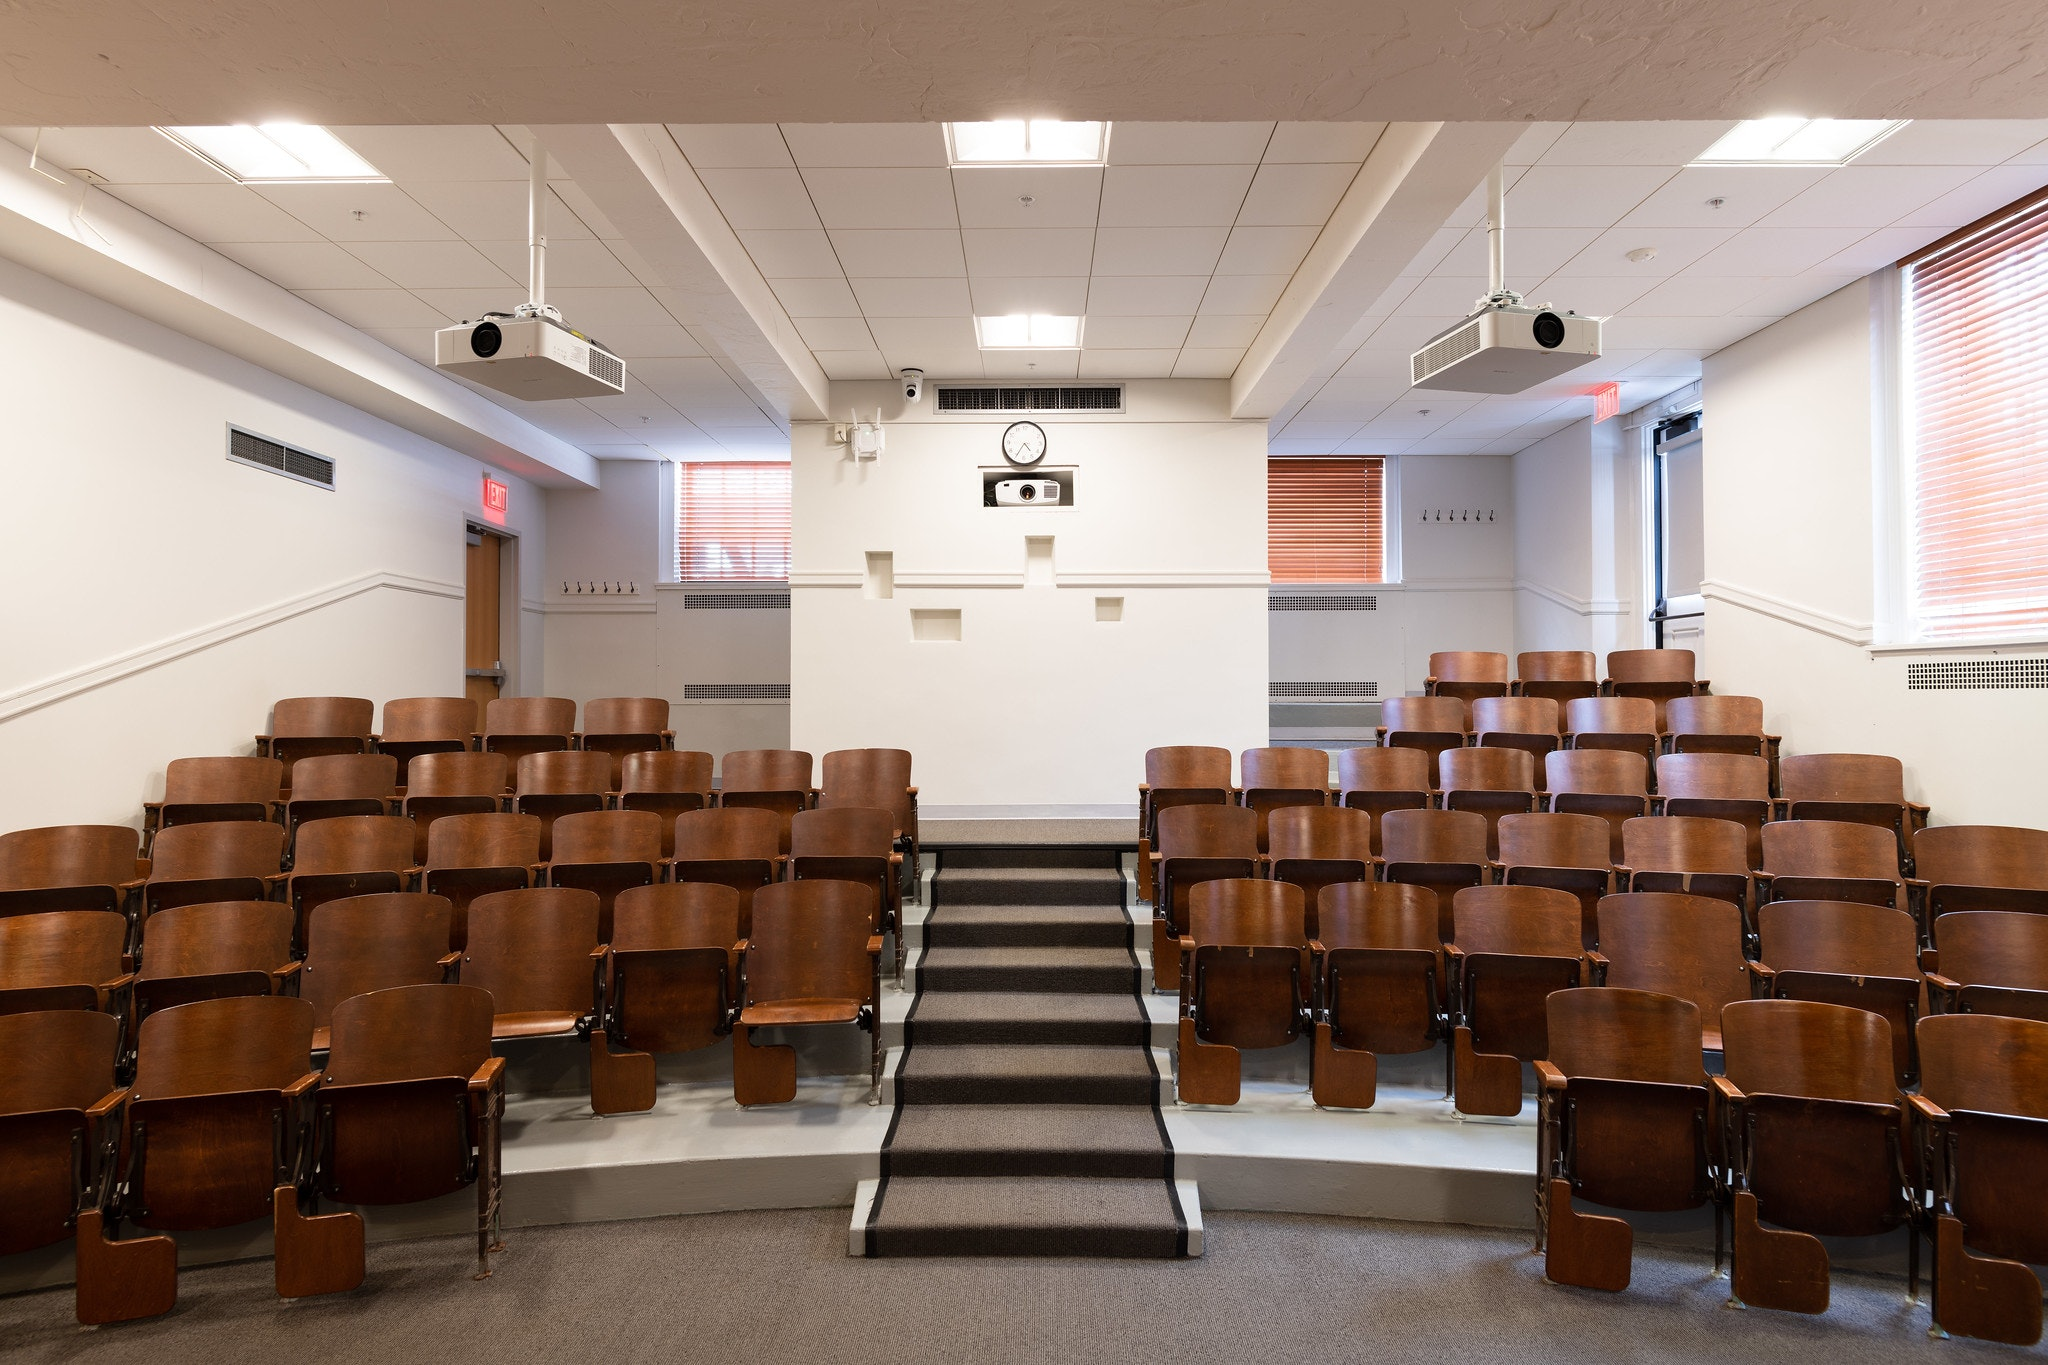 View of classroom, facing the seats. Stairs with grey carpet lining split the seating arrangement down the middle.